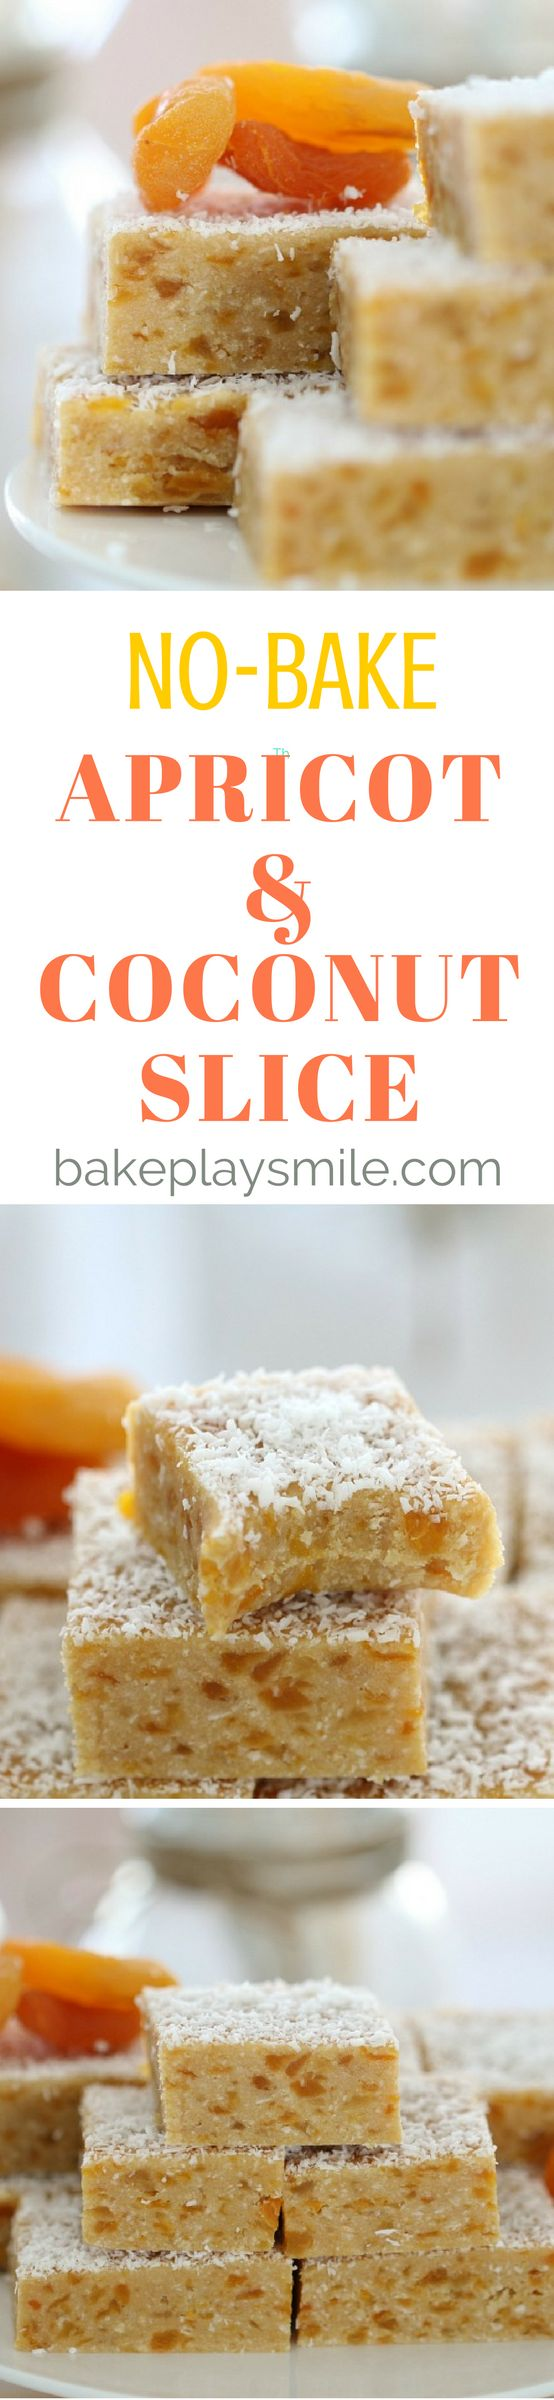 Want an Apricot Coconut Slice that is completely no-bake, takes just 5 minutes to prepare and is absolutely delicious? This is THE recipe for you!